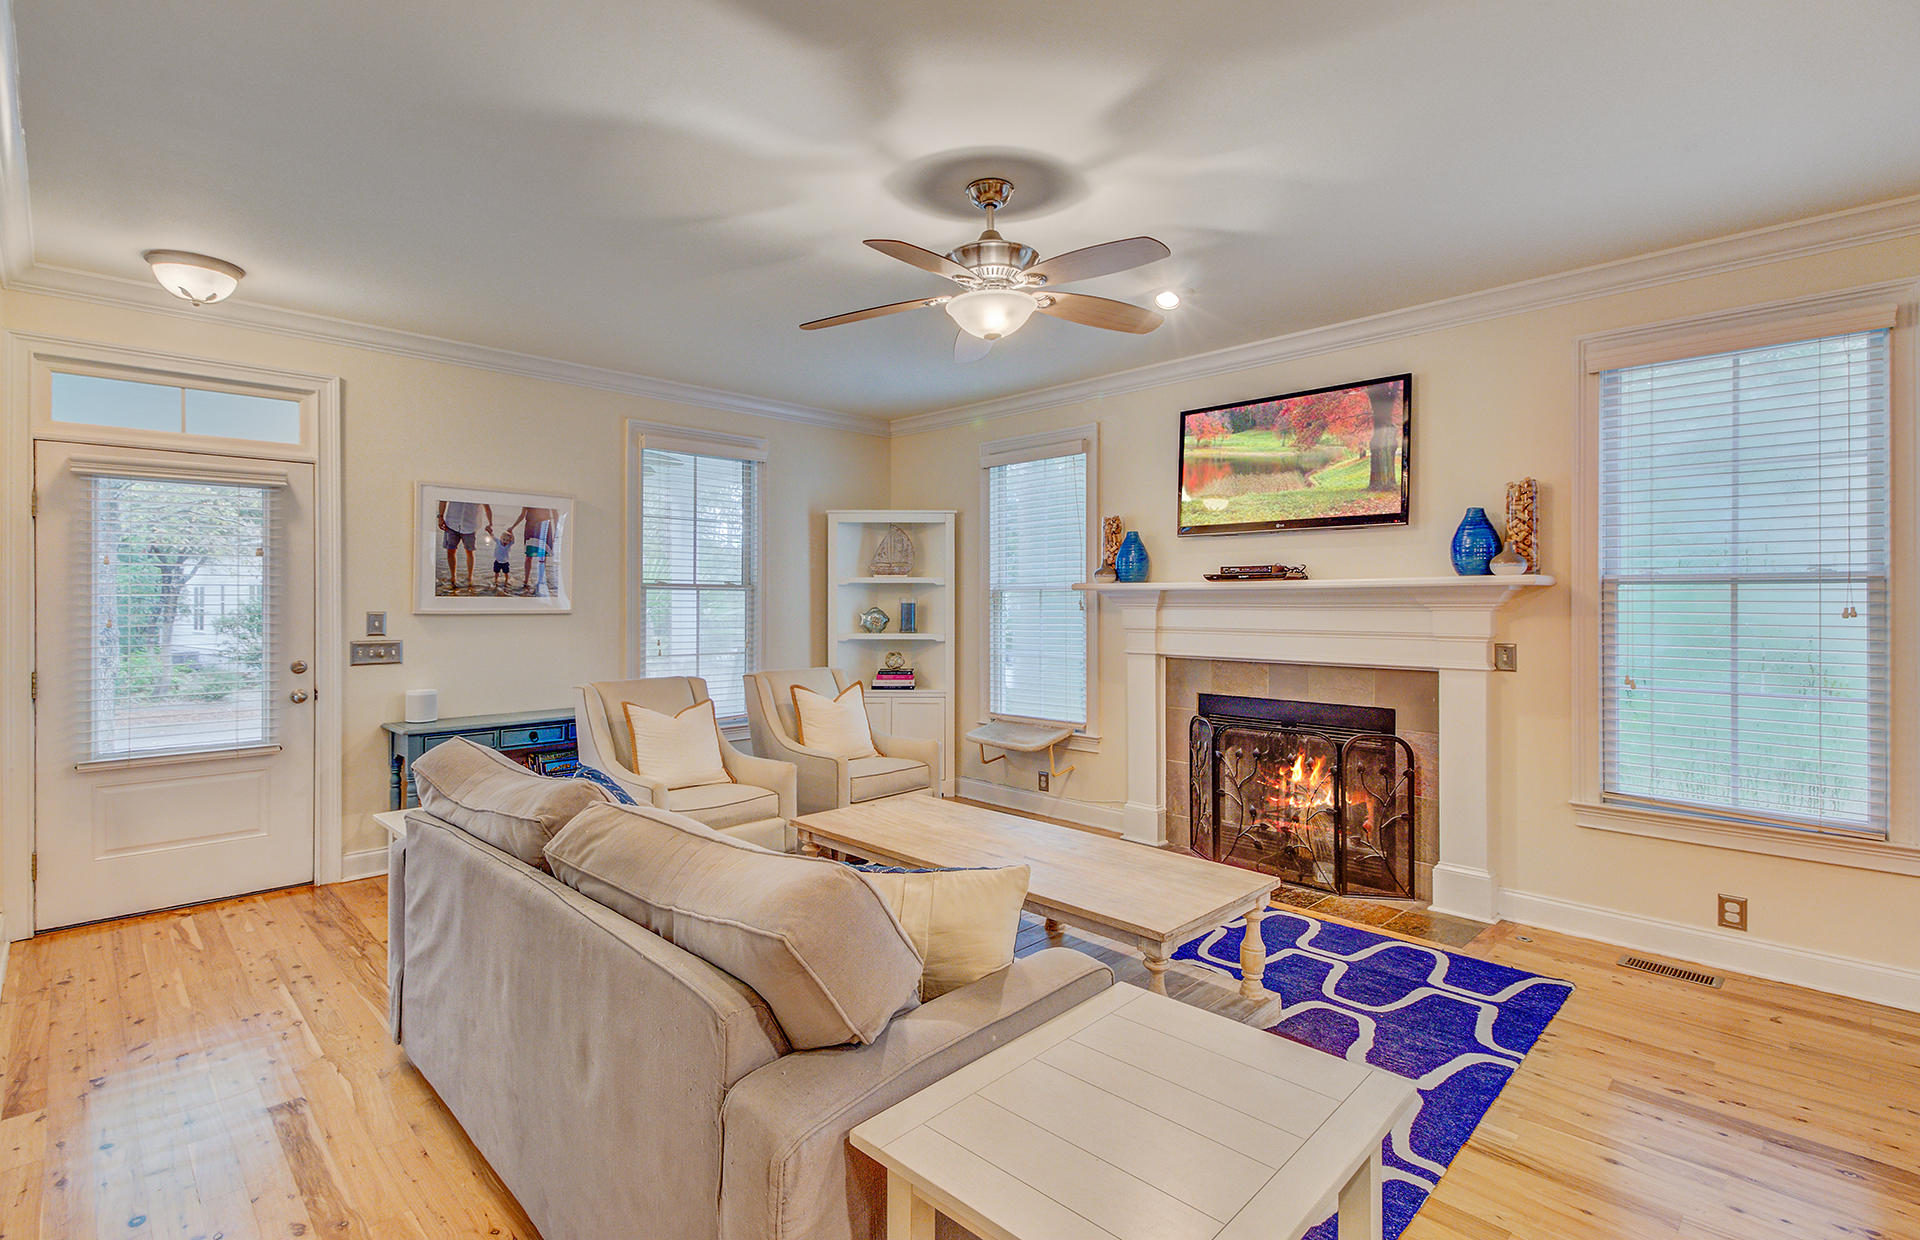 The Villages In St Johns Woods Homes For Sale - 5032 Coral Reef, Johns Island, SC - 34